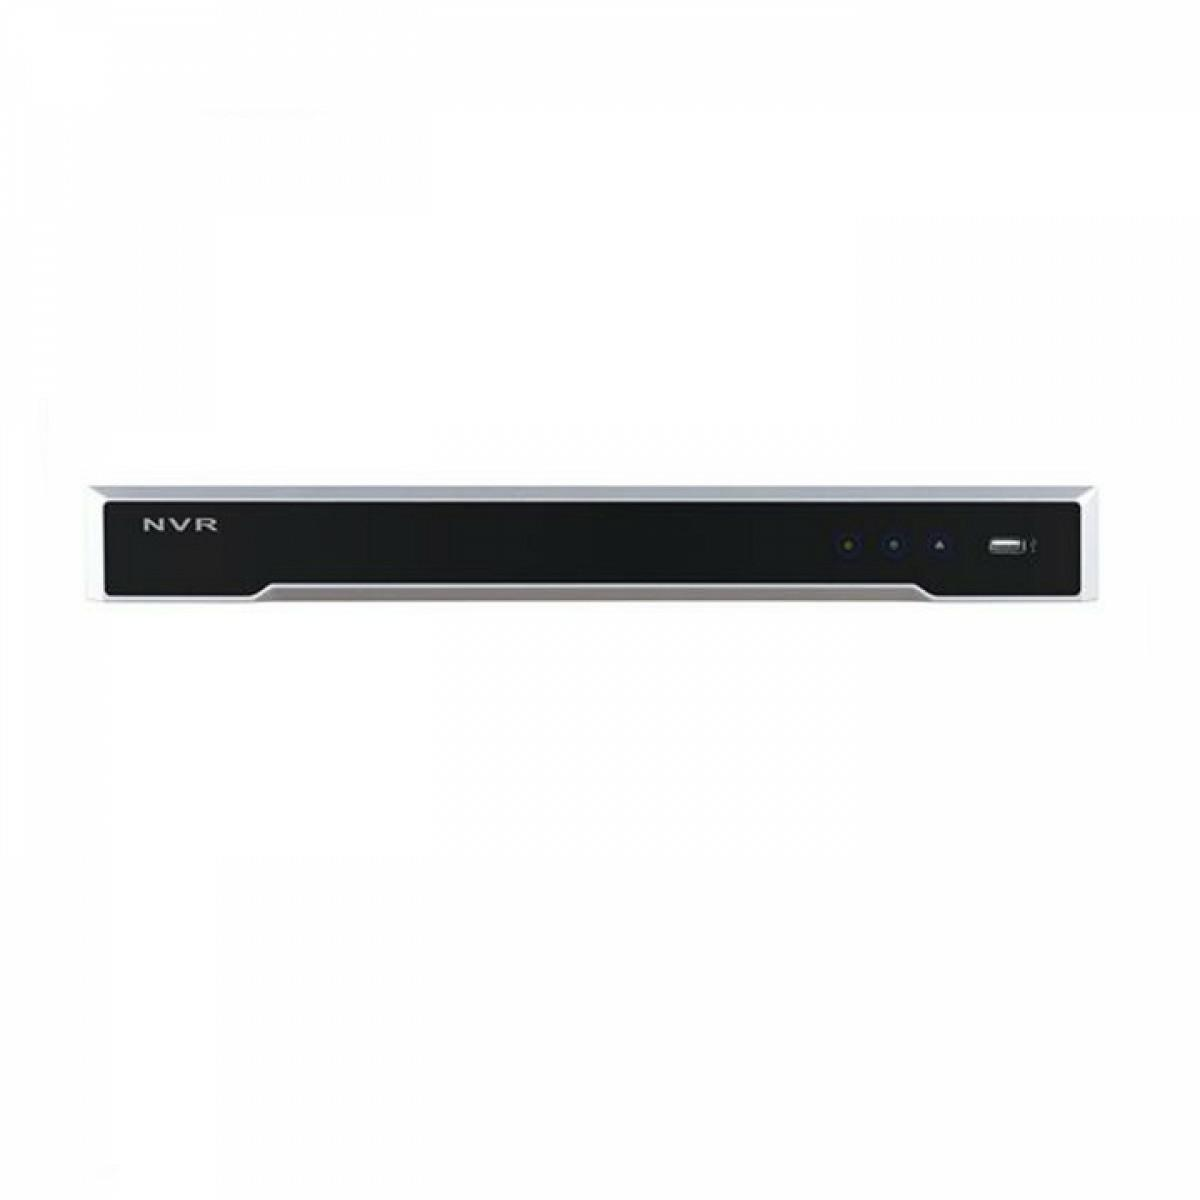 SICE Distributore Ufficiale  NVR NVR 16ch 80M inbound/256M outbound | DS-7616NI-I2